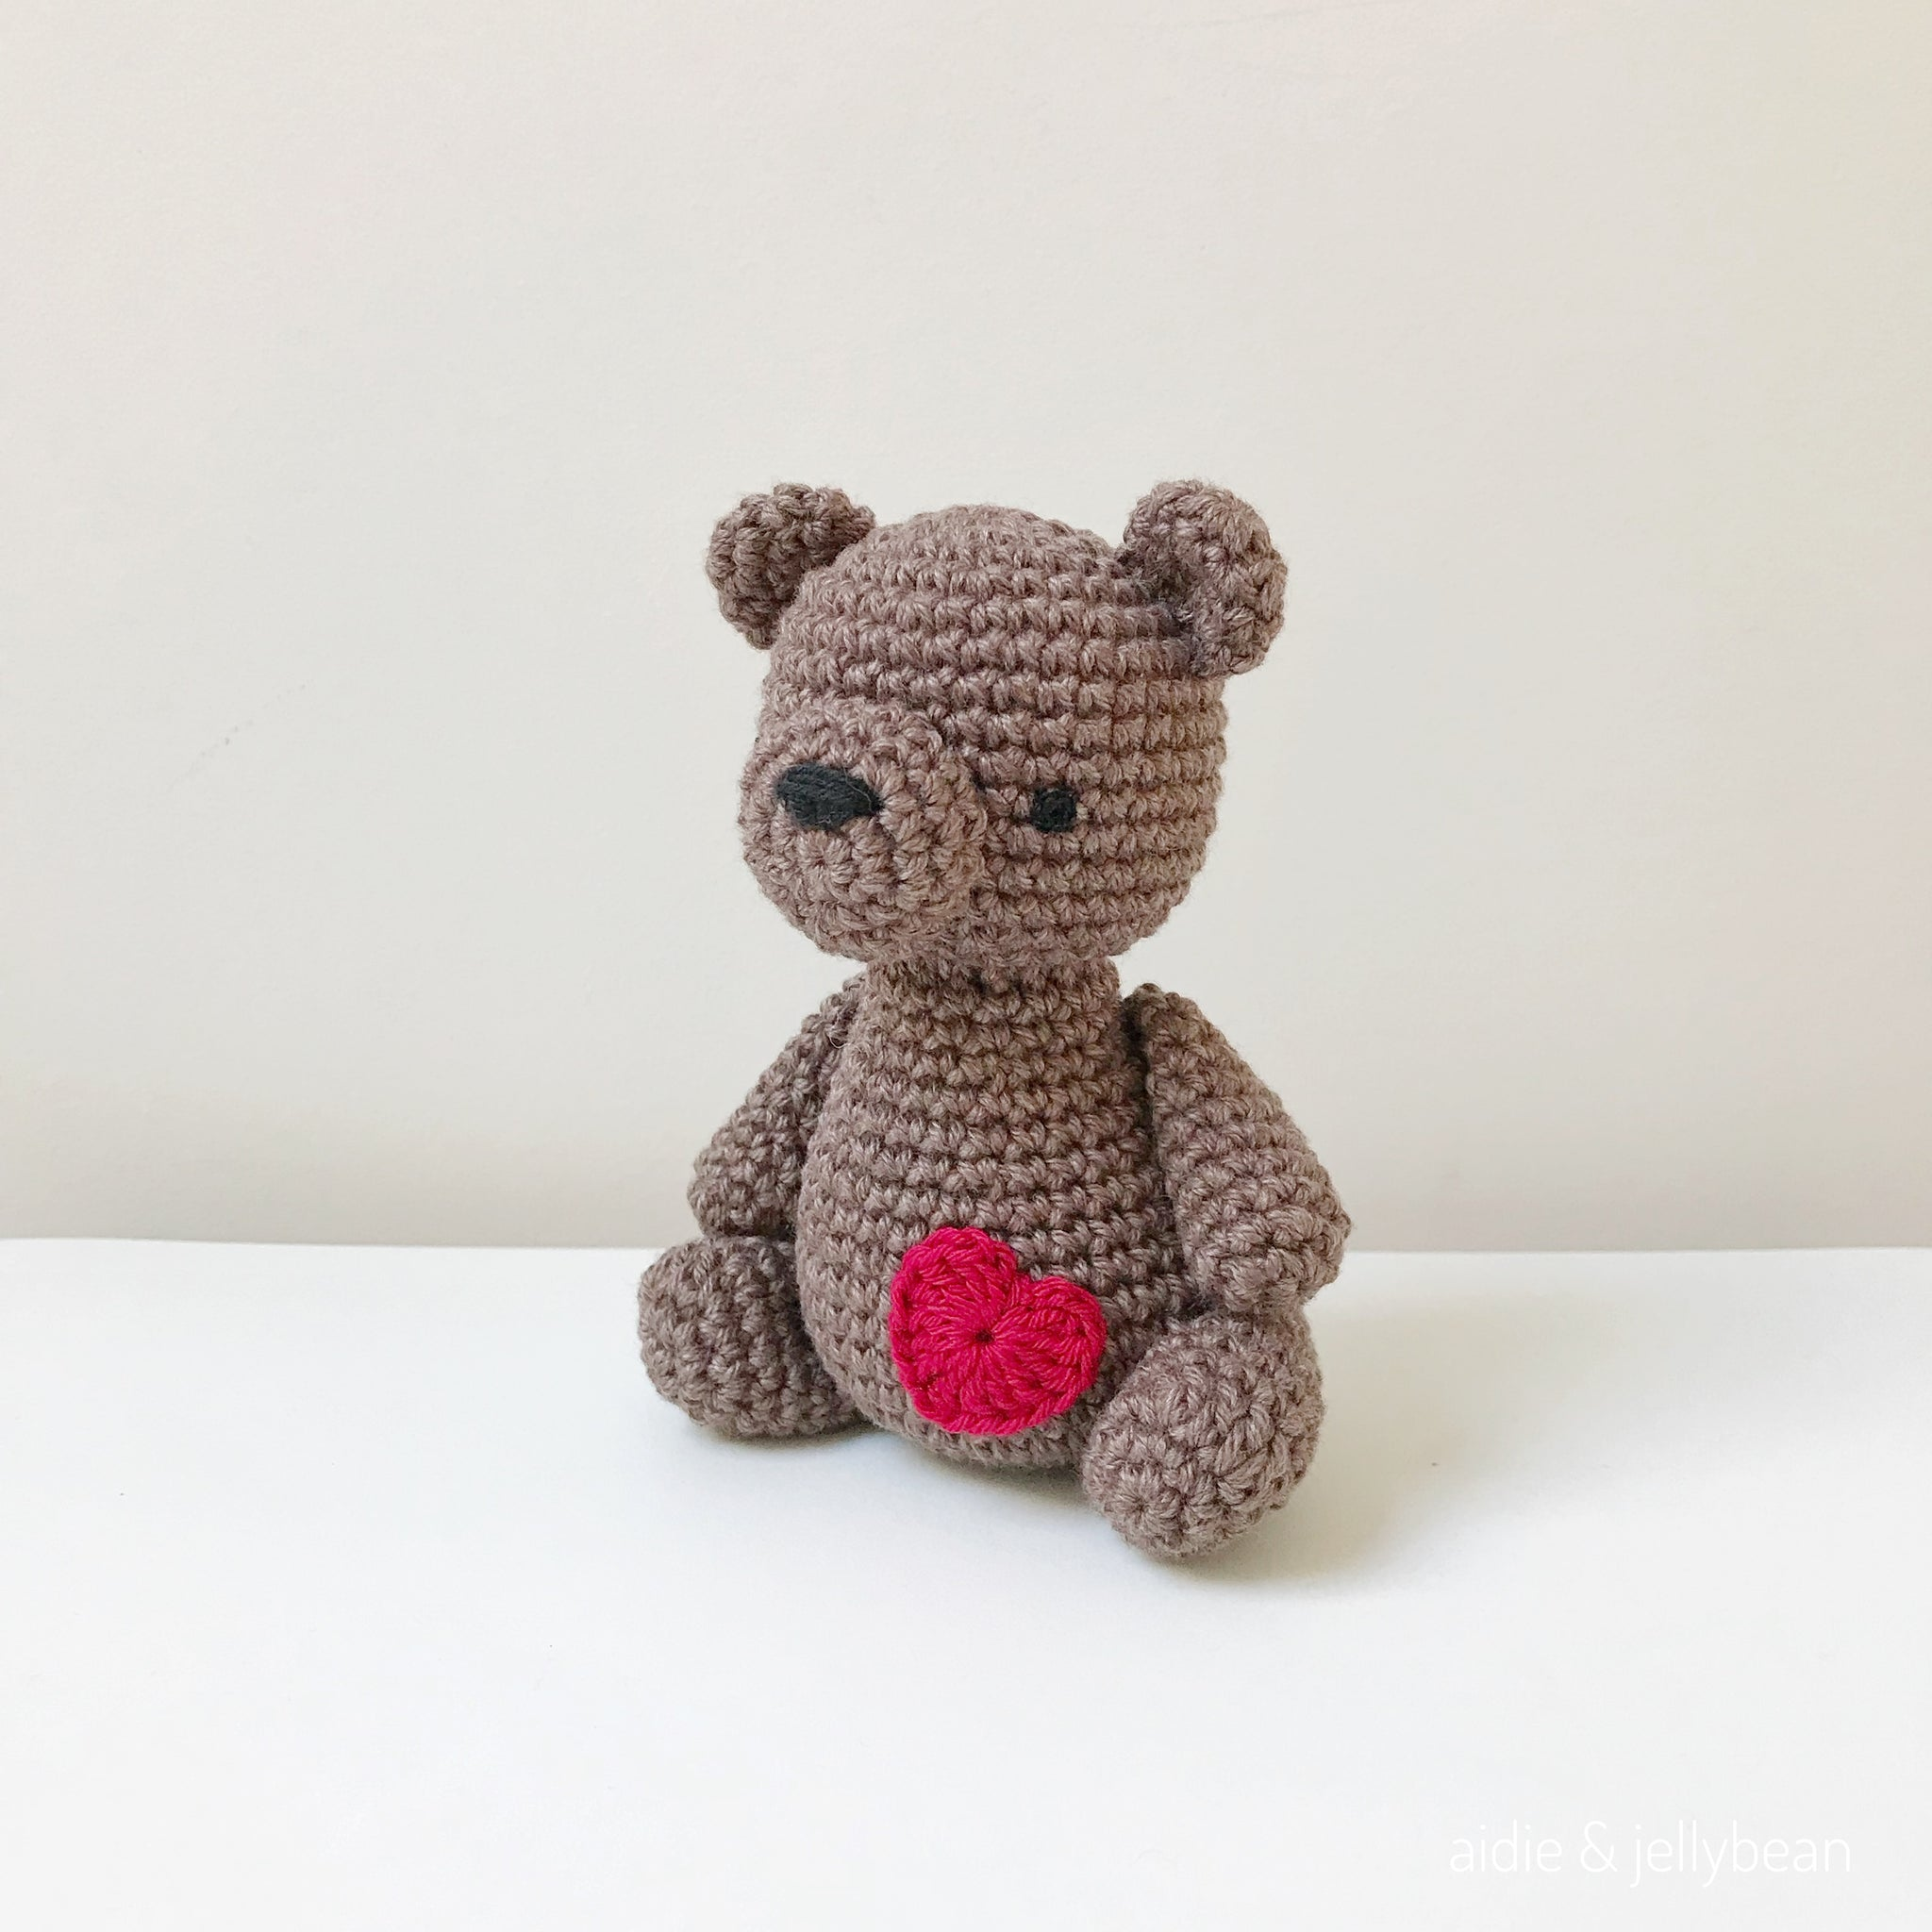 Amigurumi Teddy Bear Tutorial And Description – Knitting Concept | 2048x2048